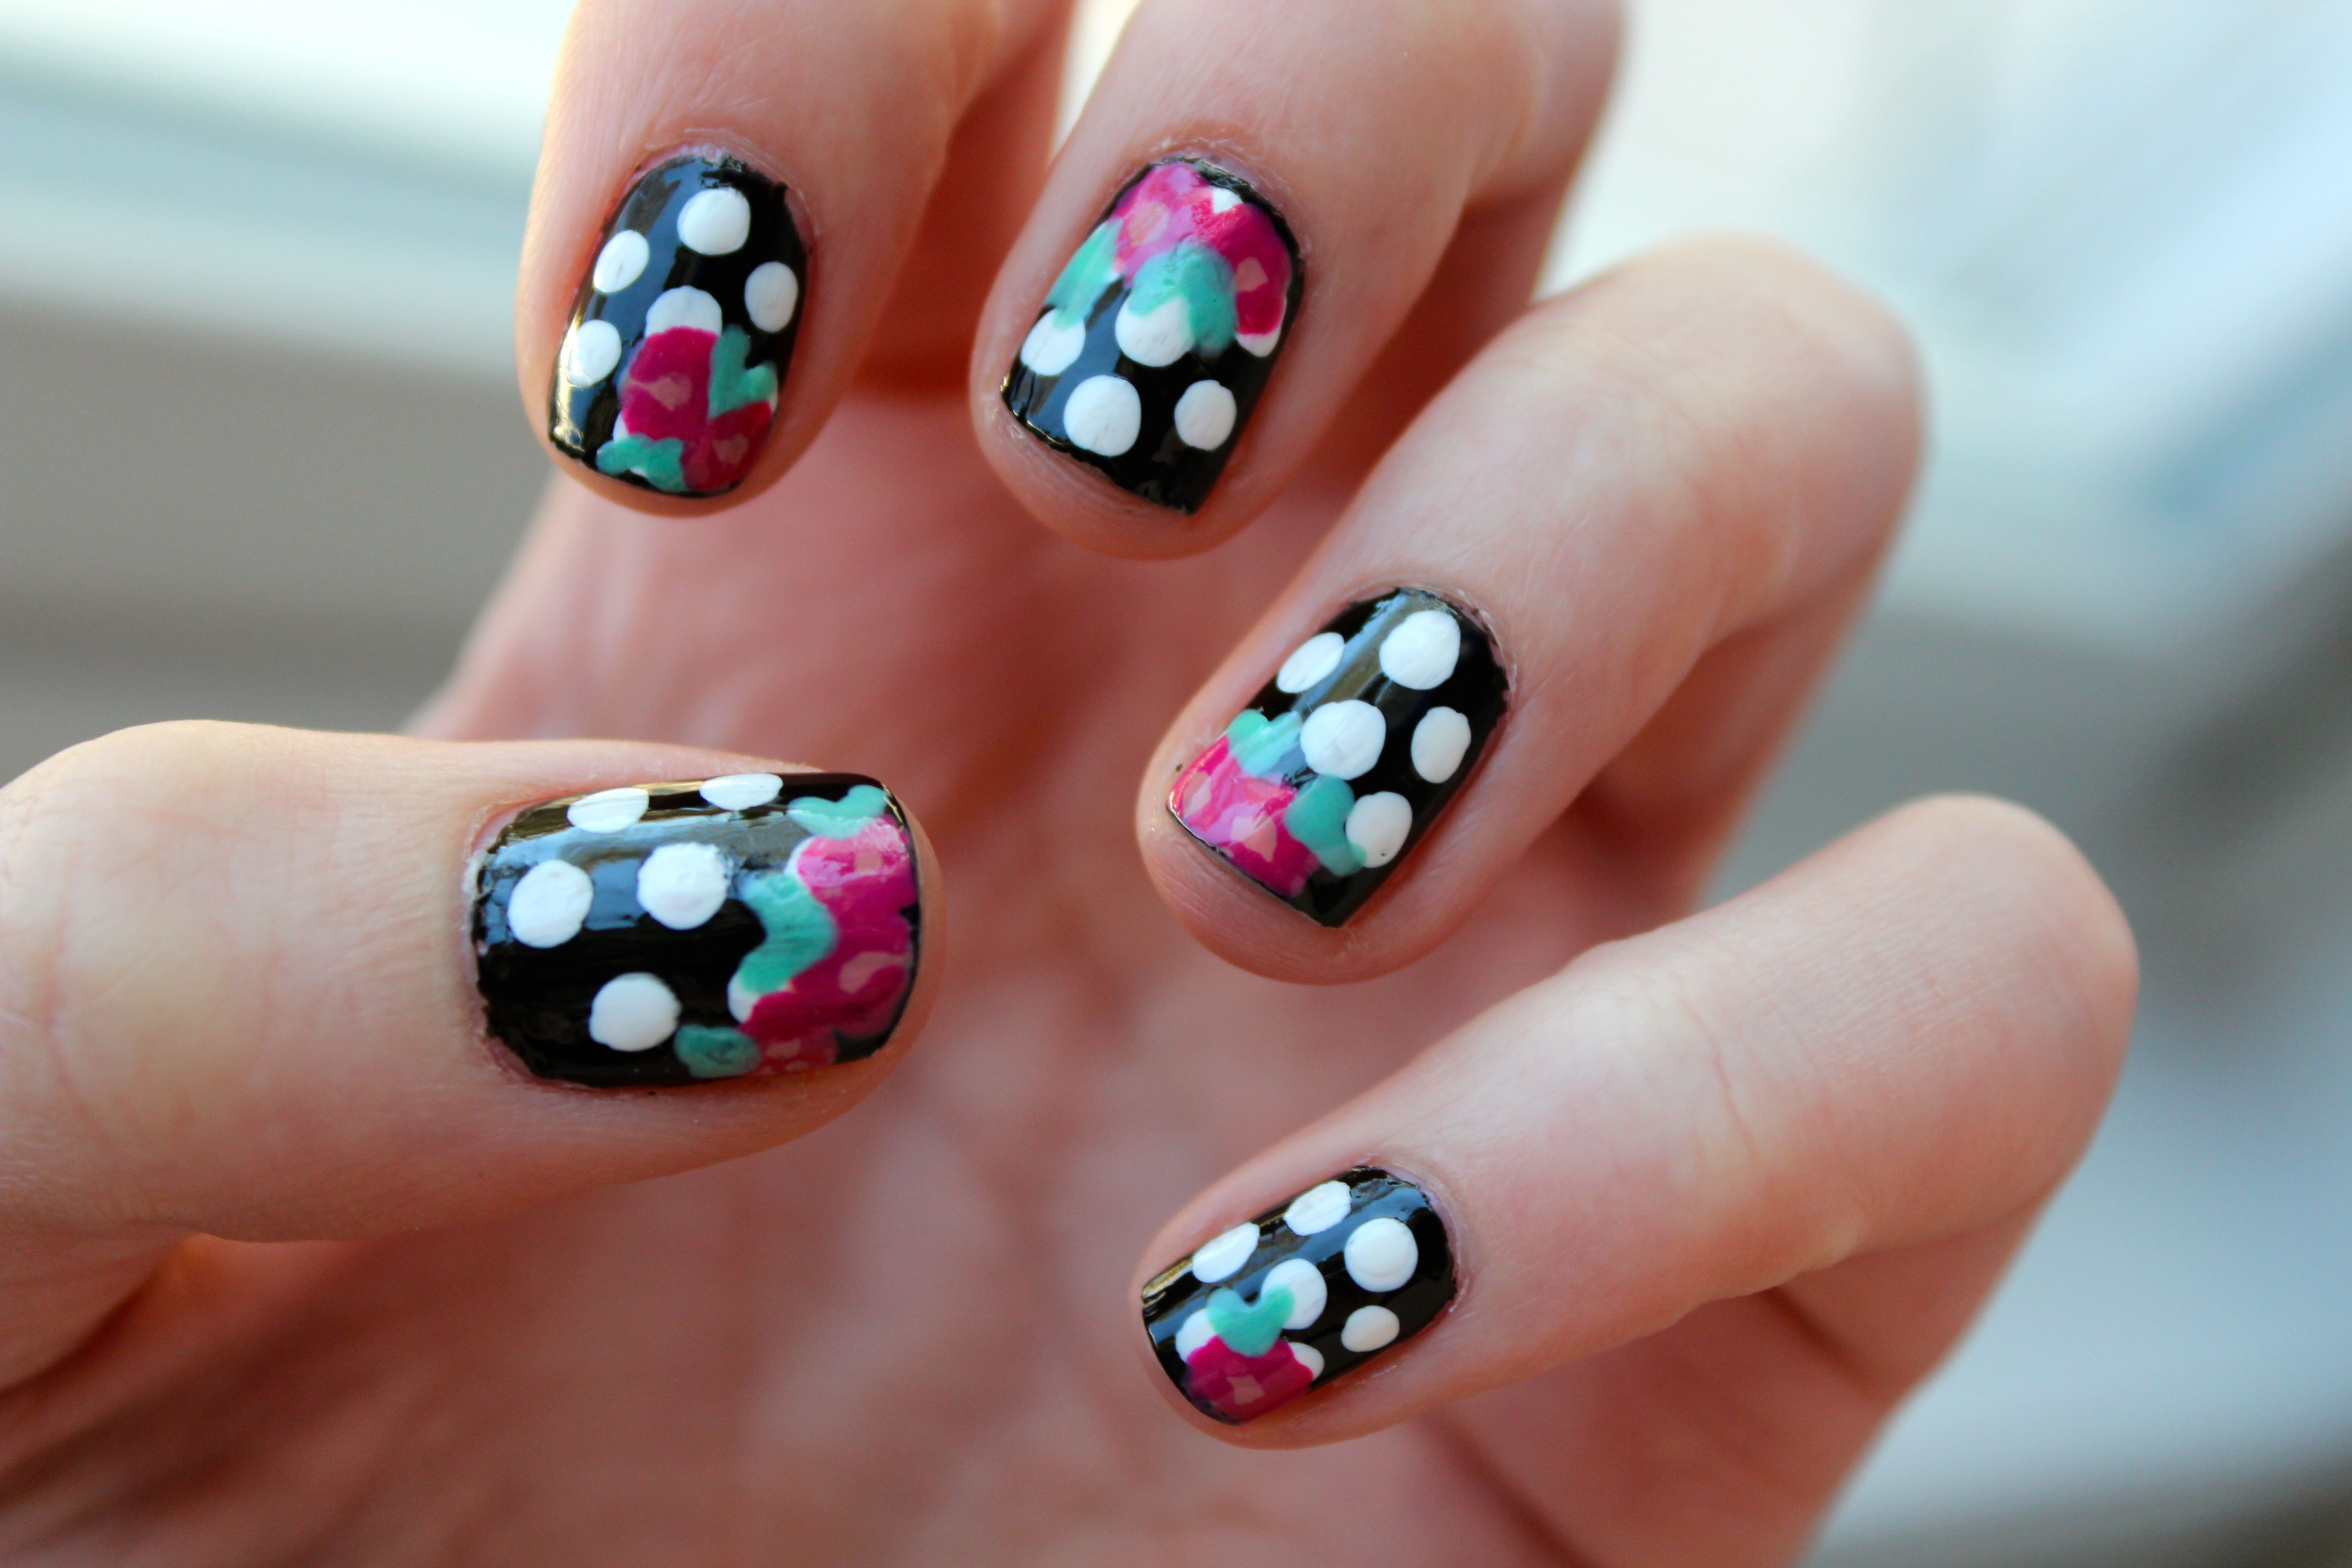 Polka dots and flowers :)